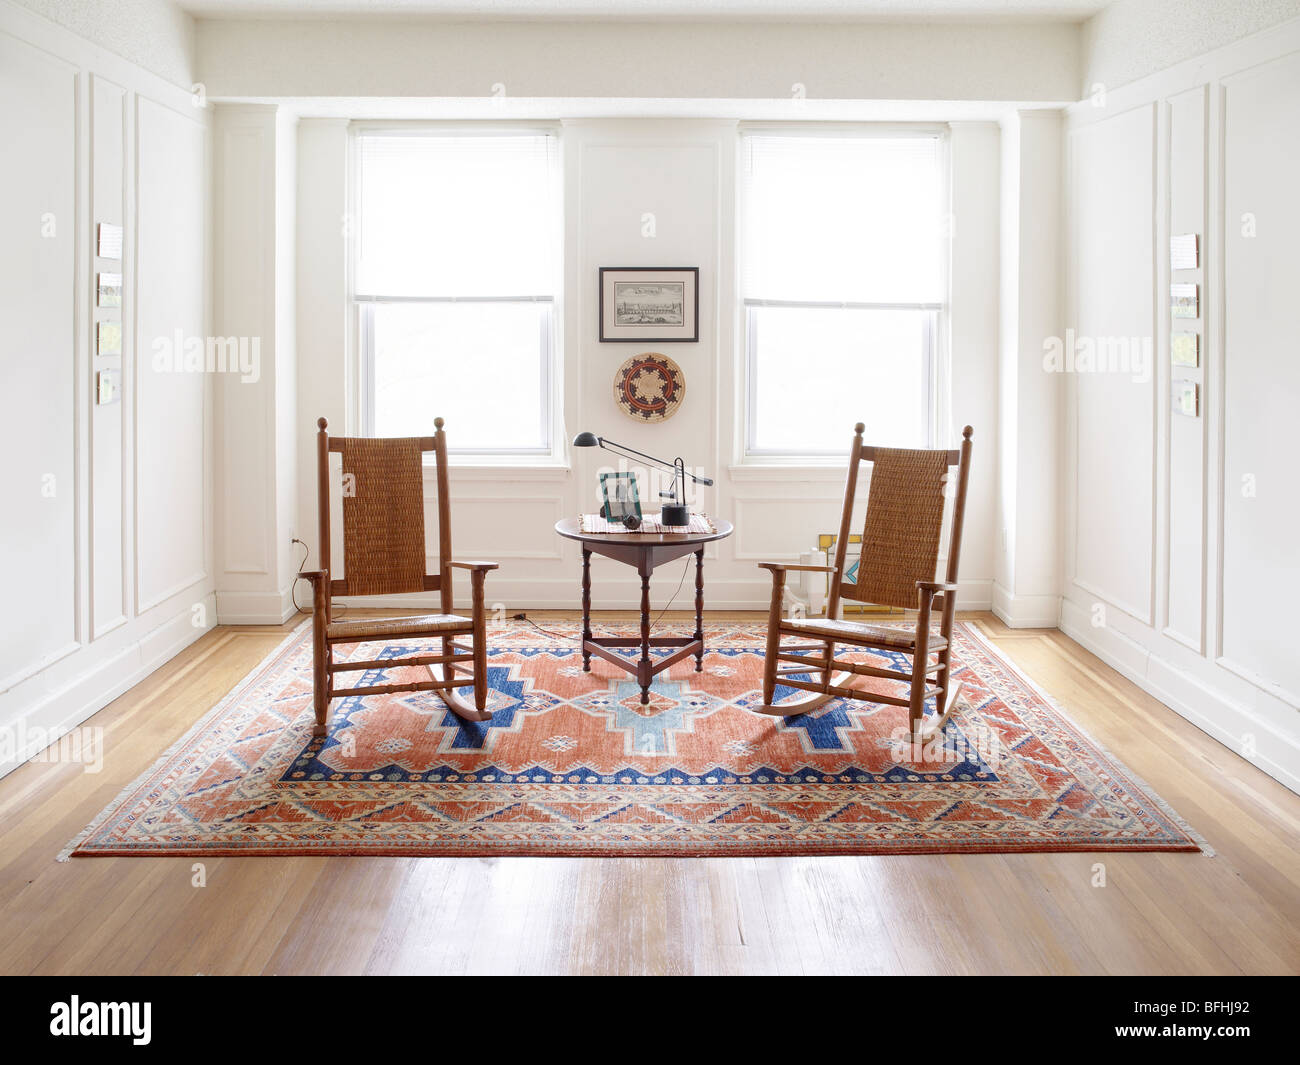 Two Rocking Chairs in White Room With Bright Light Through Windows - Stock Photo